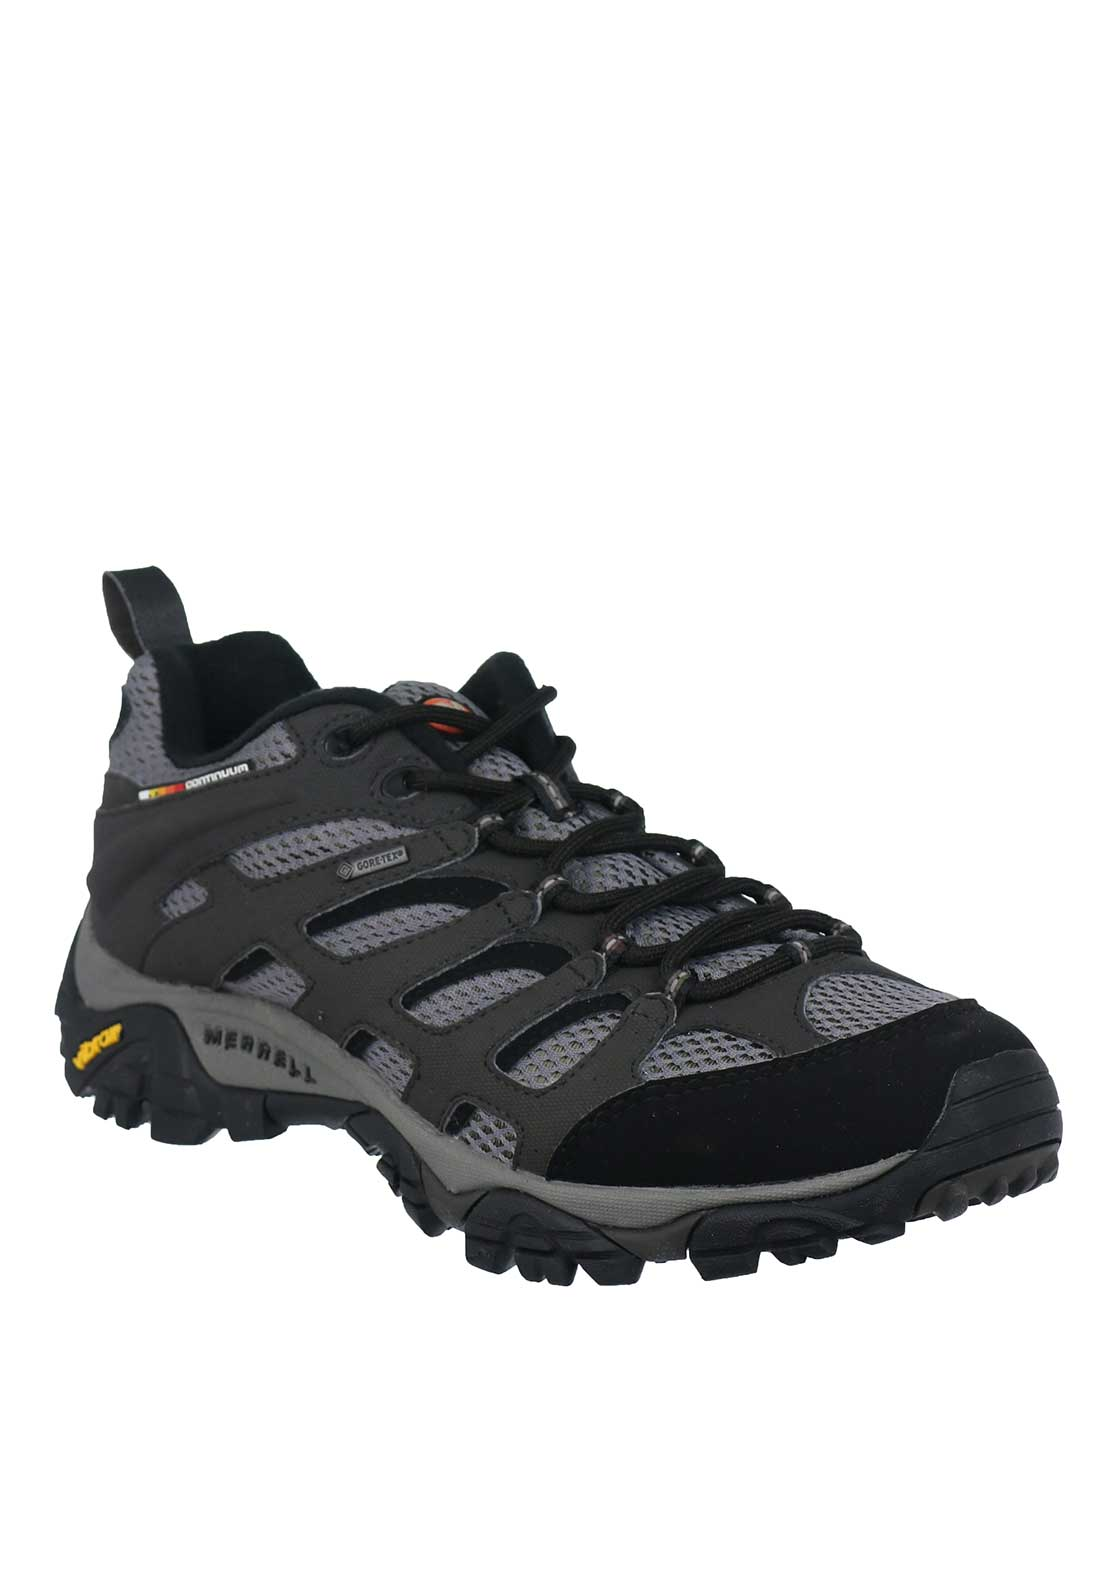 Merrell Moab Gore-Tex Wide Fit Hiking Trainer, Beluga